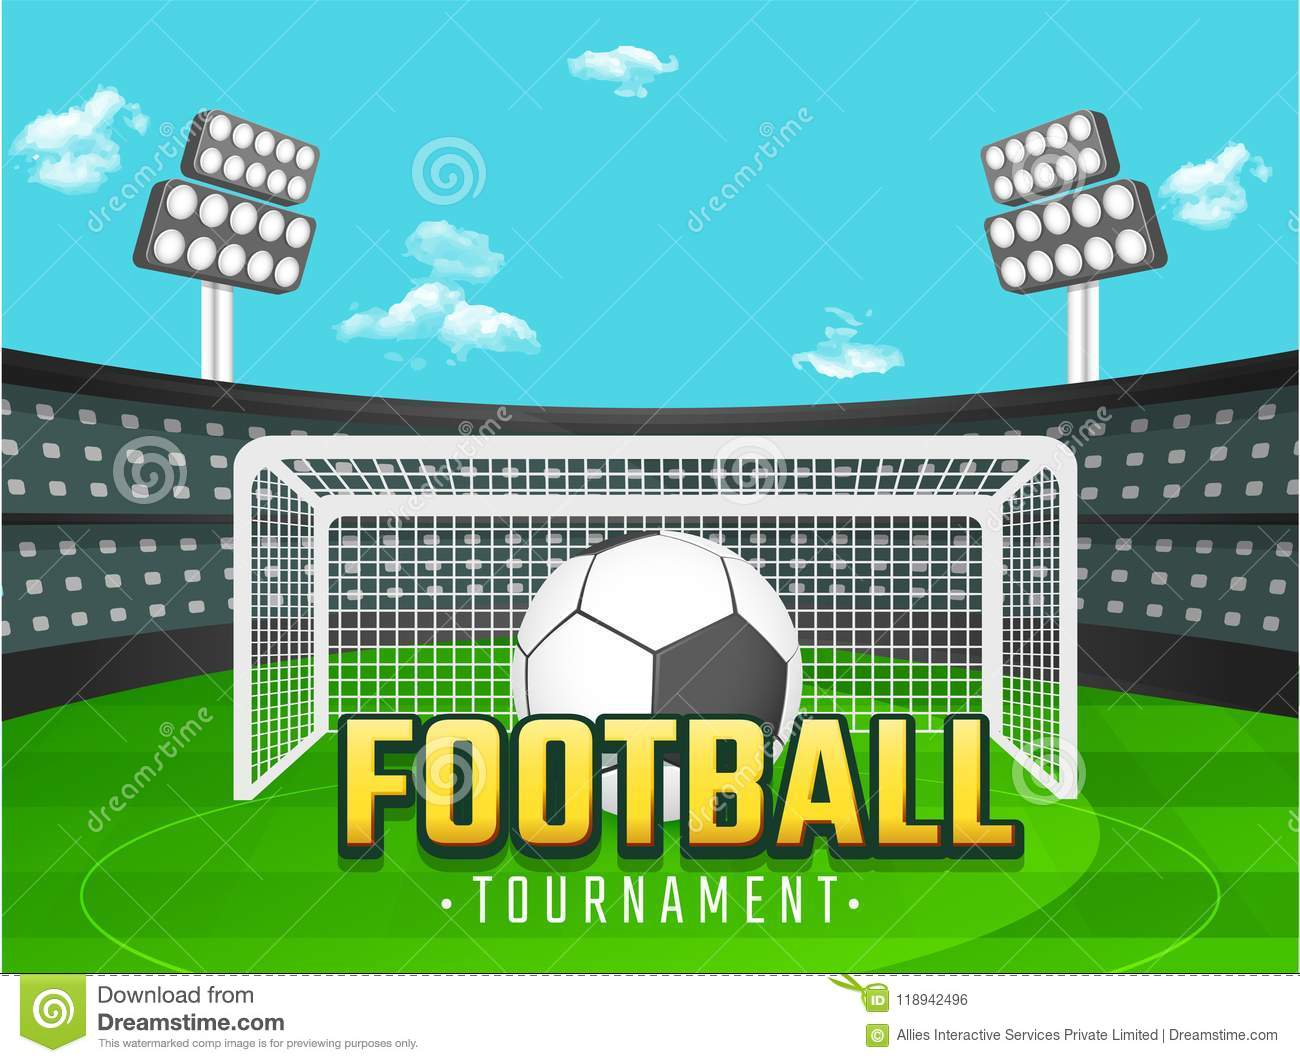 Football Tournament Banner Or Poster Design With Football And Go Stock Illustration Illustration Of Playing Tournament 118942496